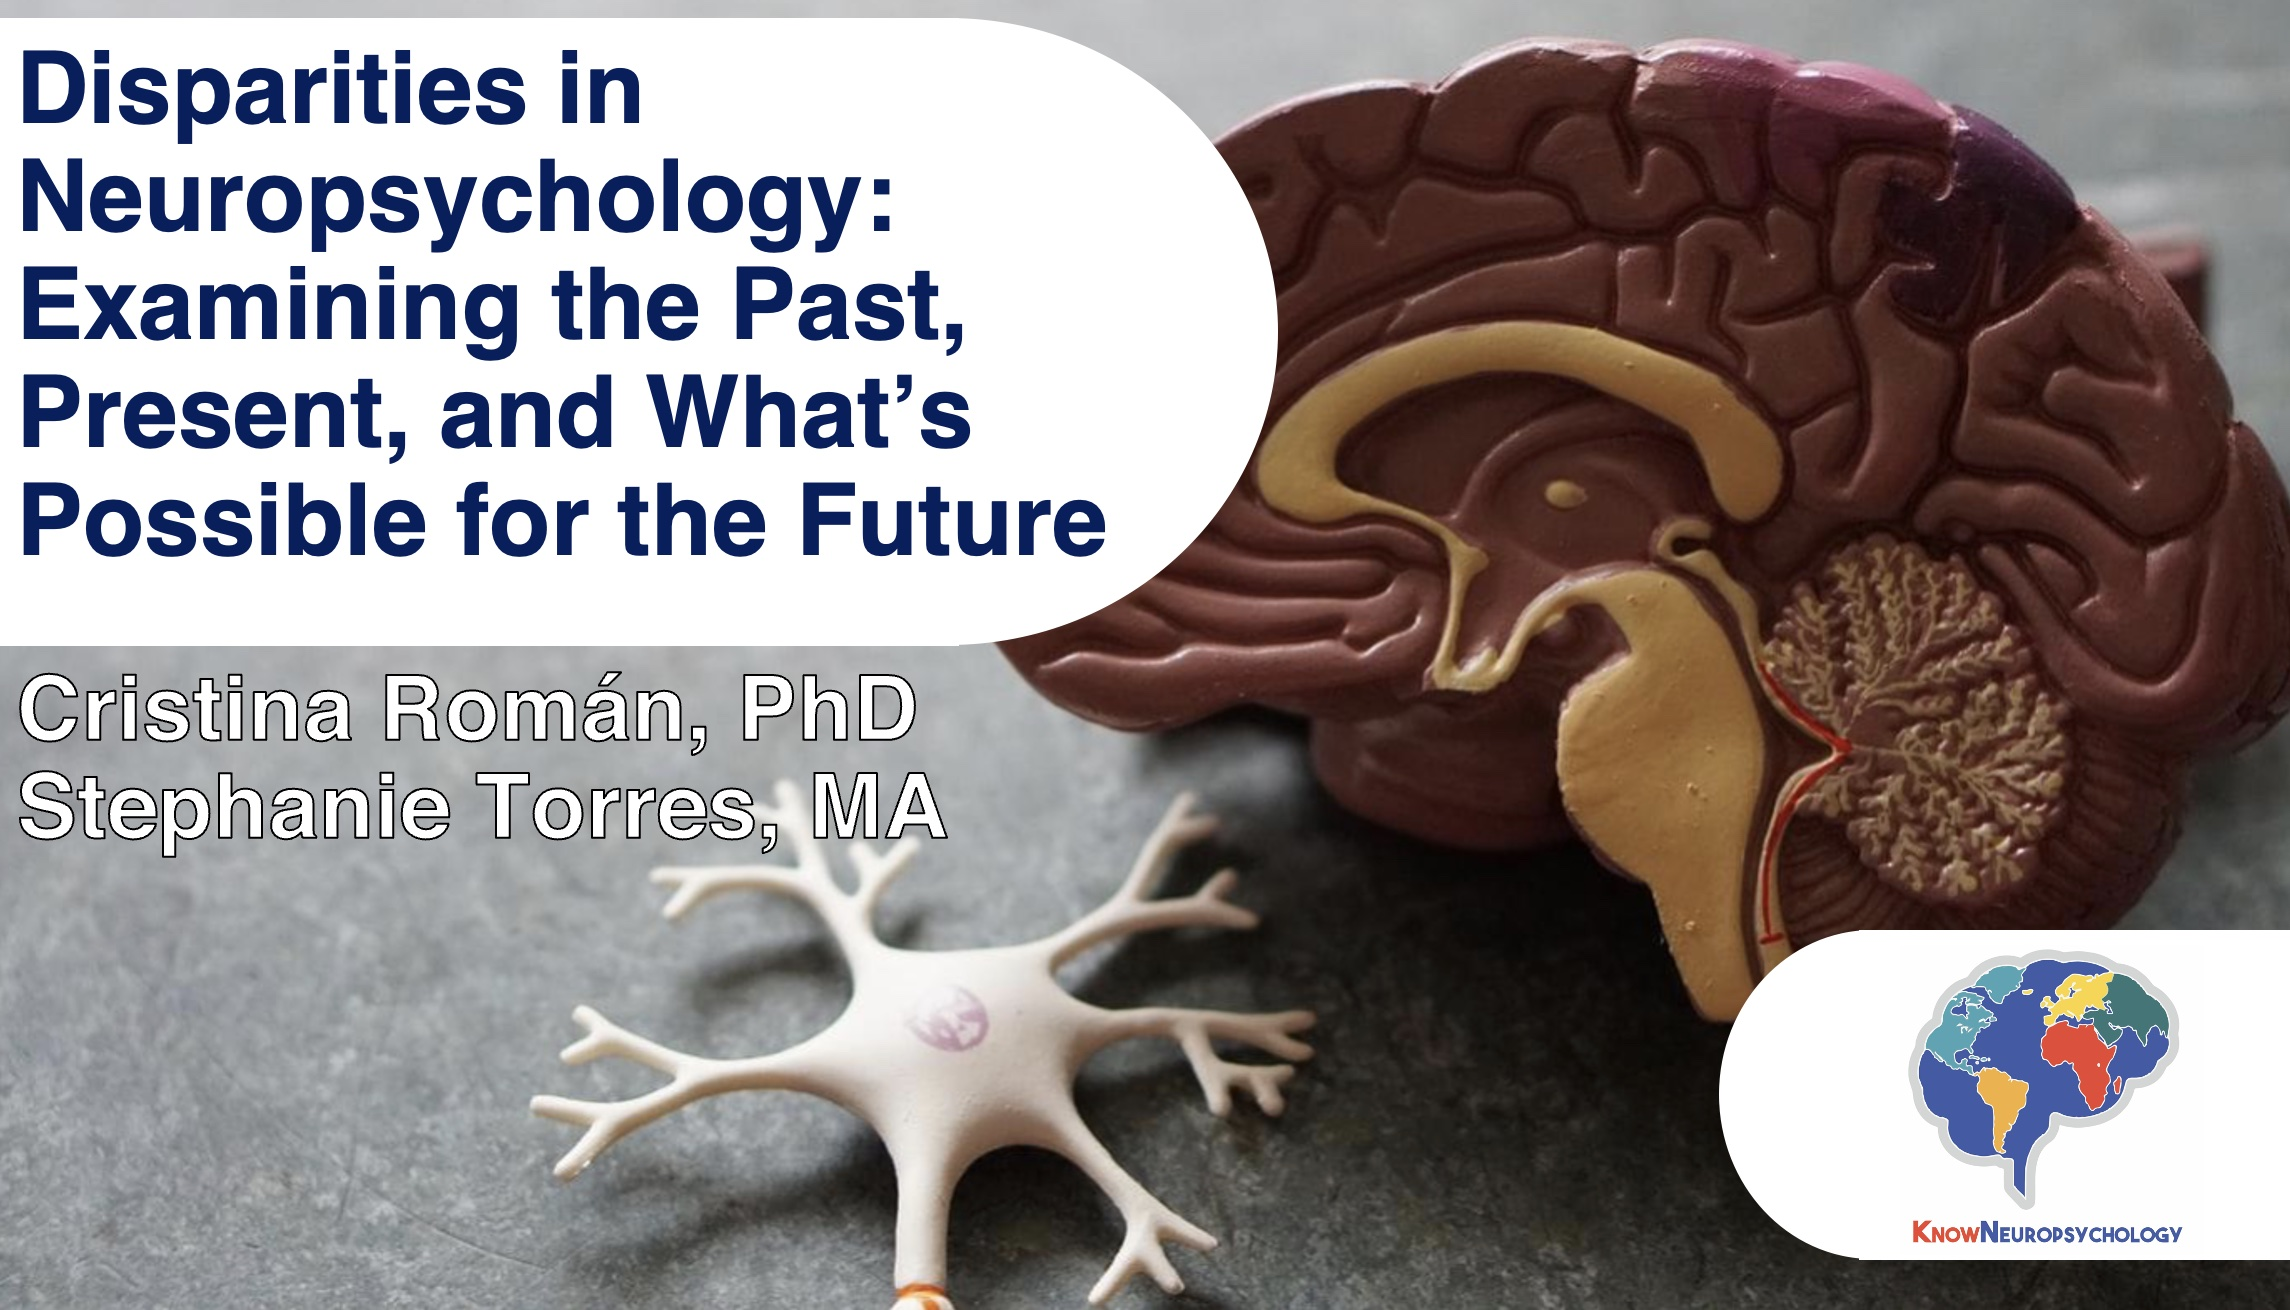 Disparities in Neuropsychology: Examining the past, present, and what's possible for the future with Dr. Cristina Roman and Stephanie Torres